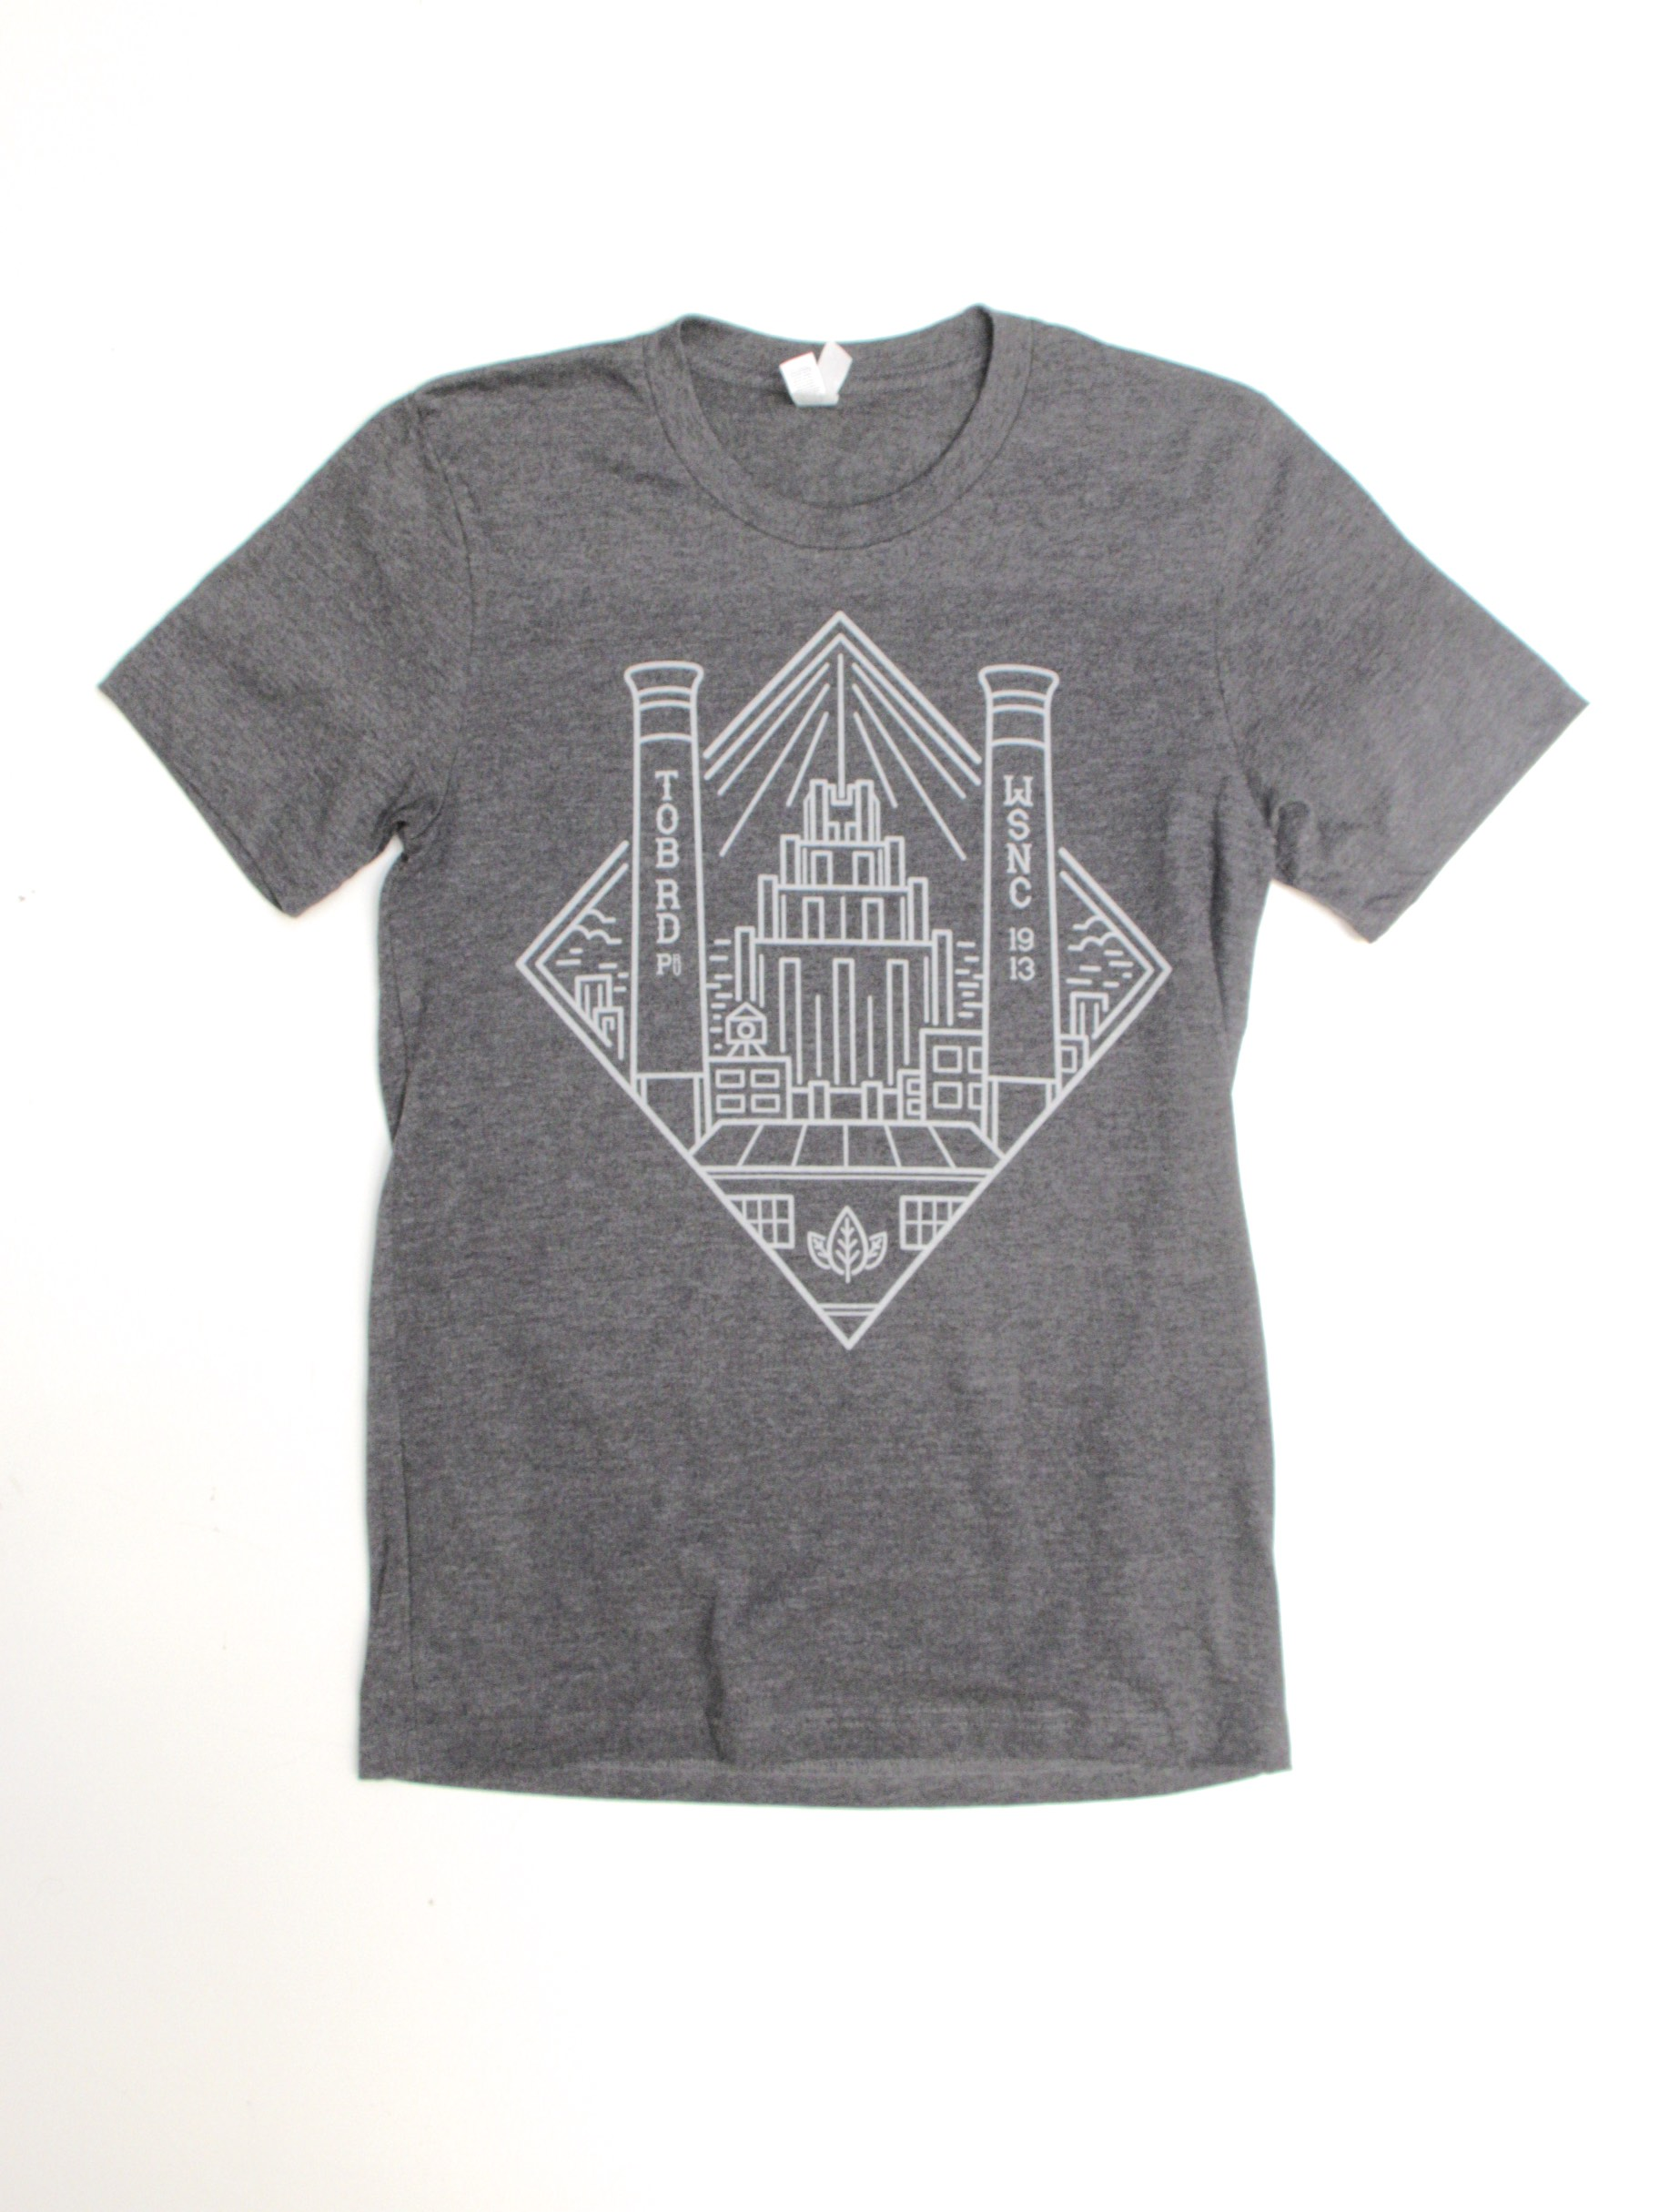 Winston Salem Stacks Skyline Tee Shirt Design Archives